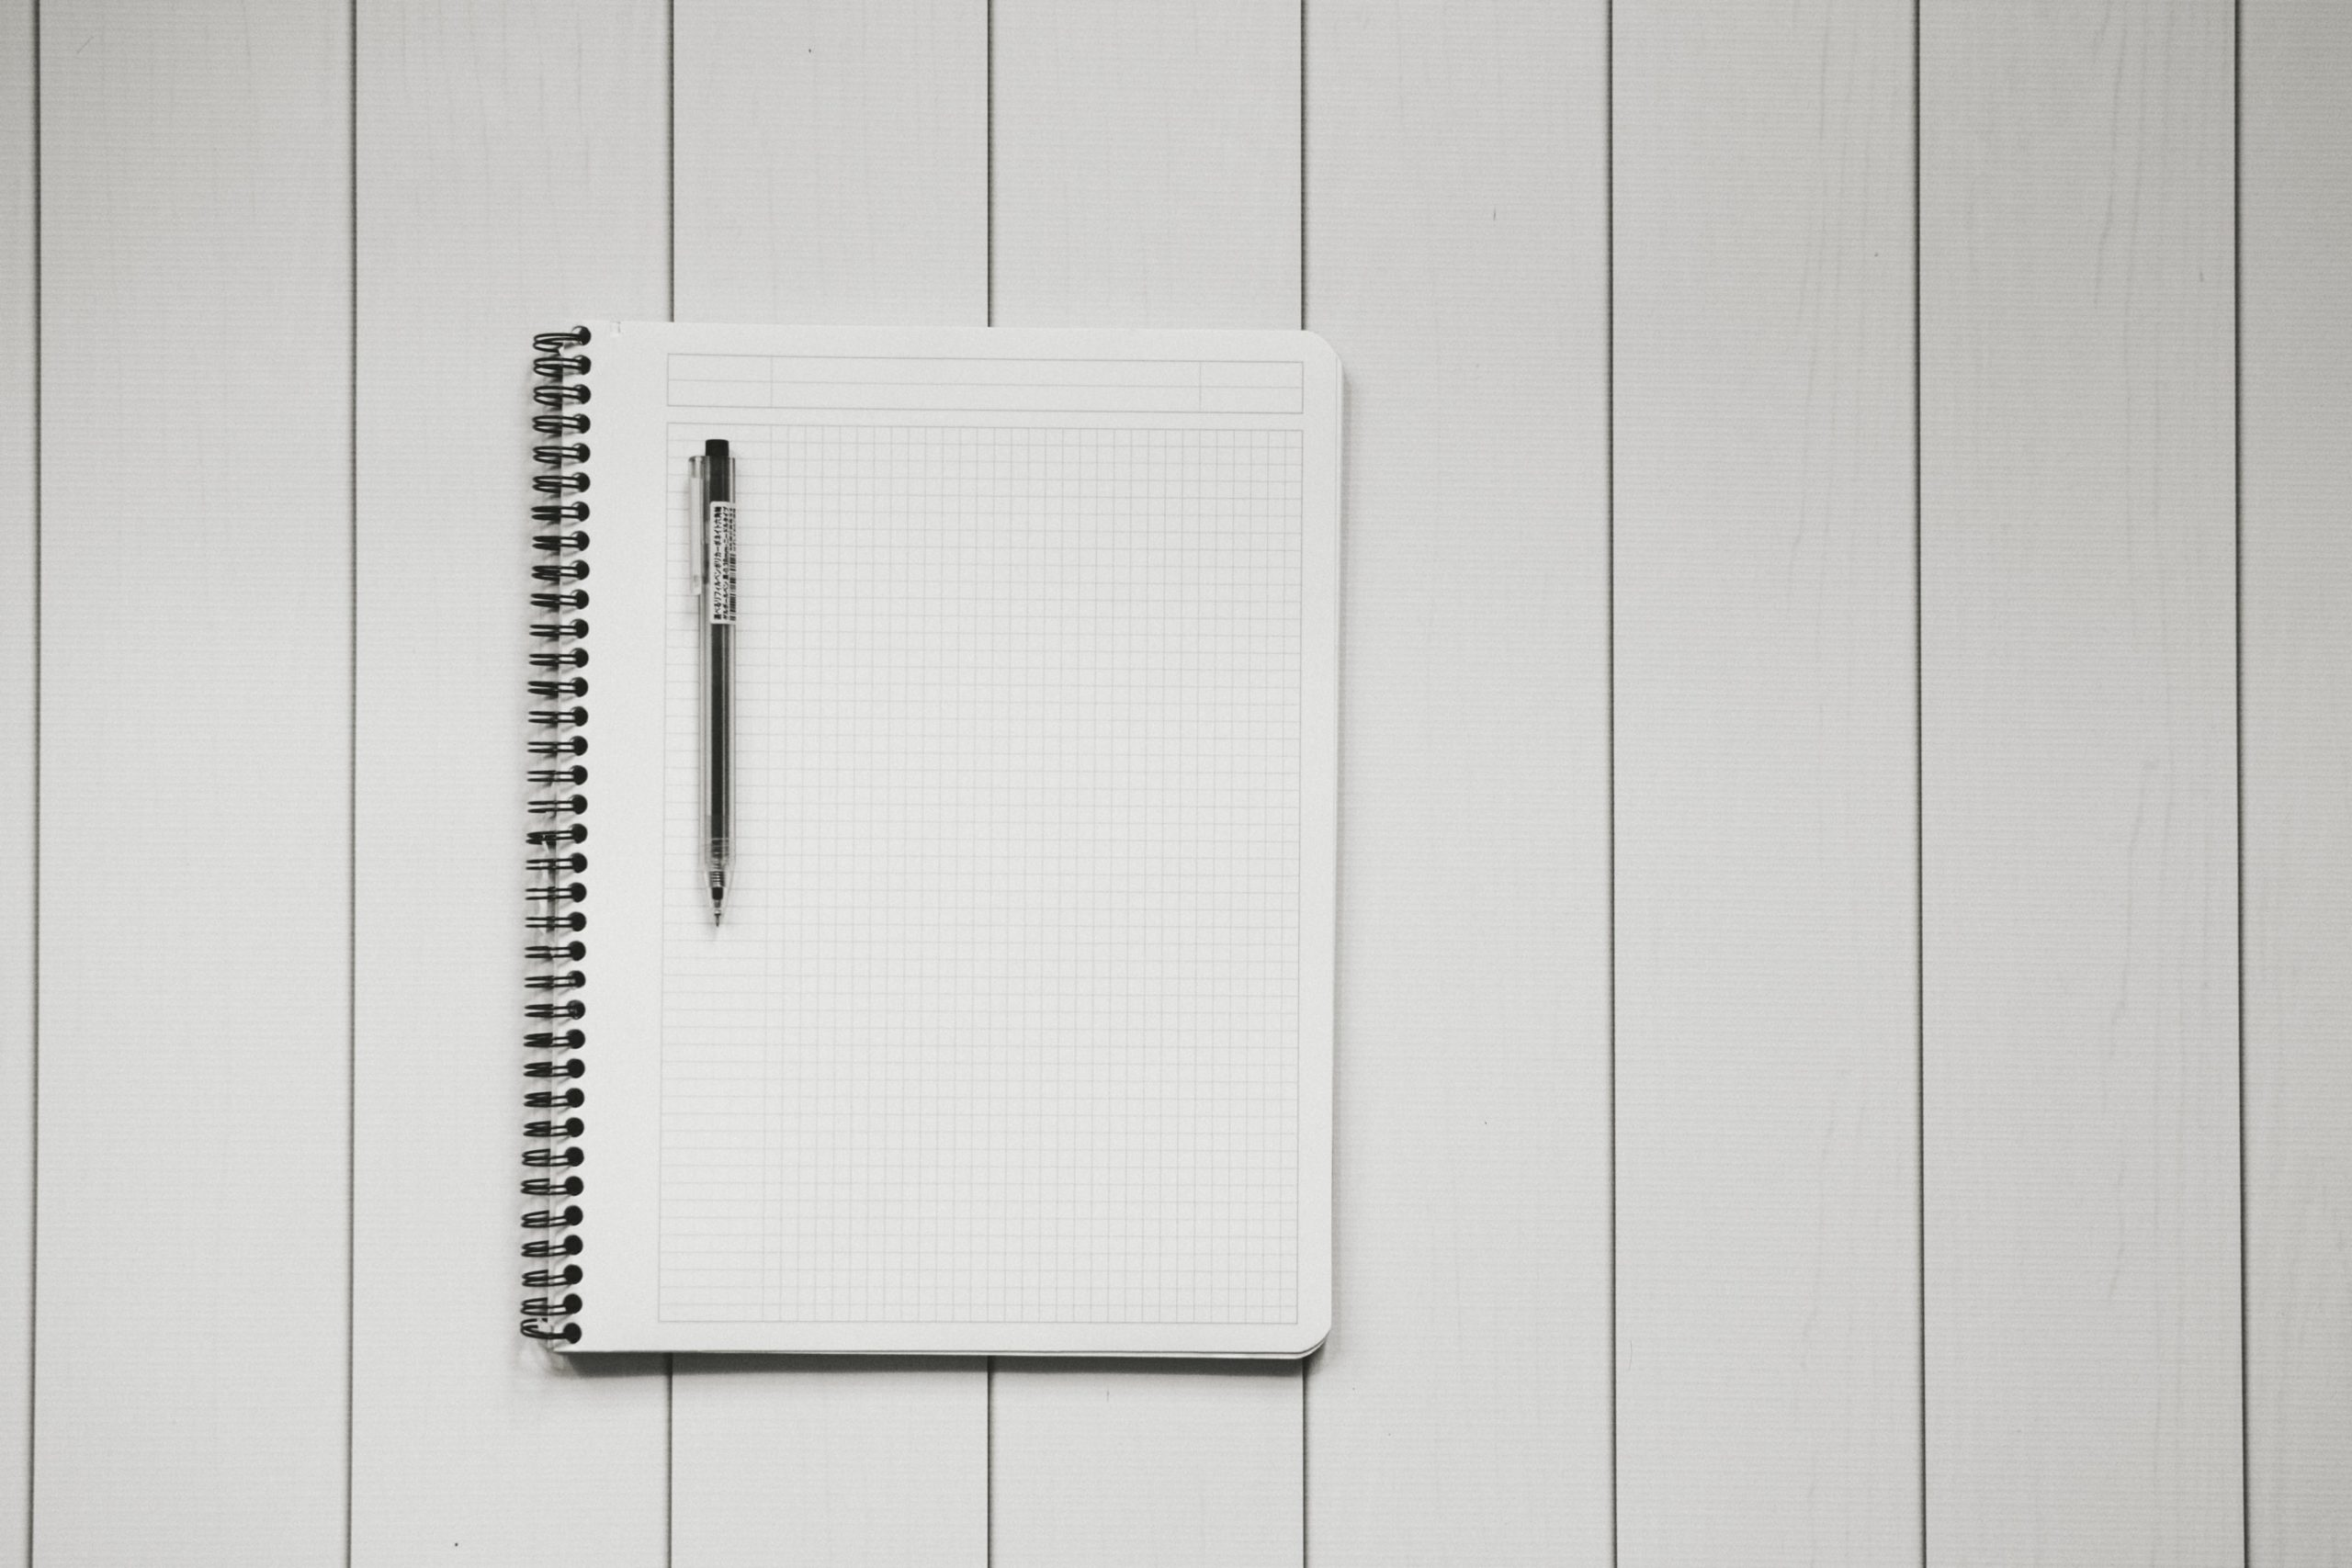 waste check - blank notepad and pen on a white wooden surface